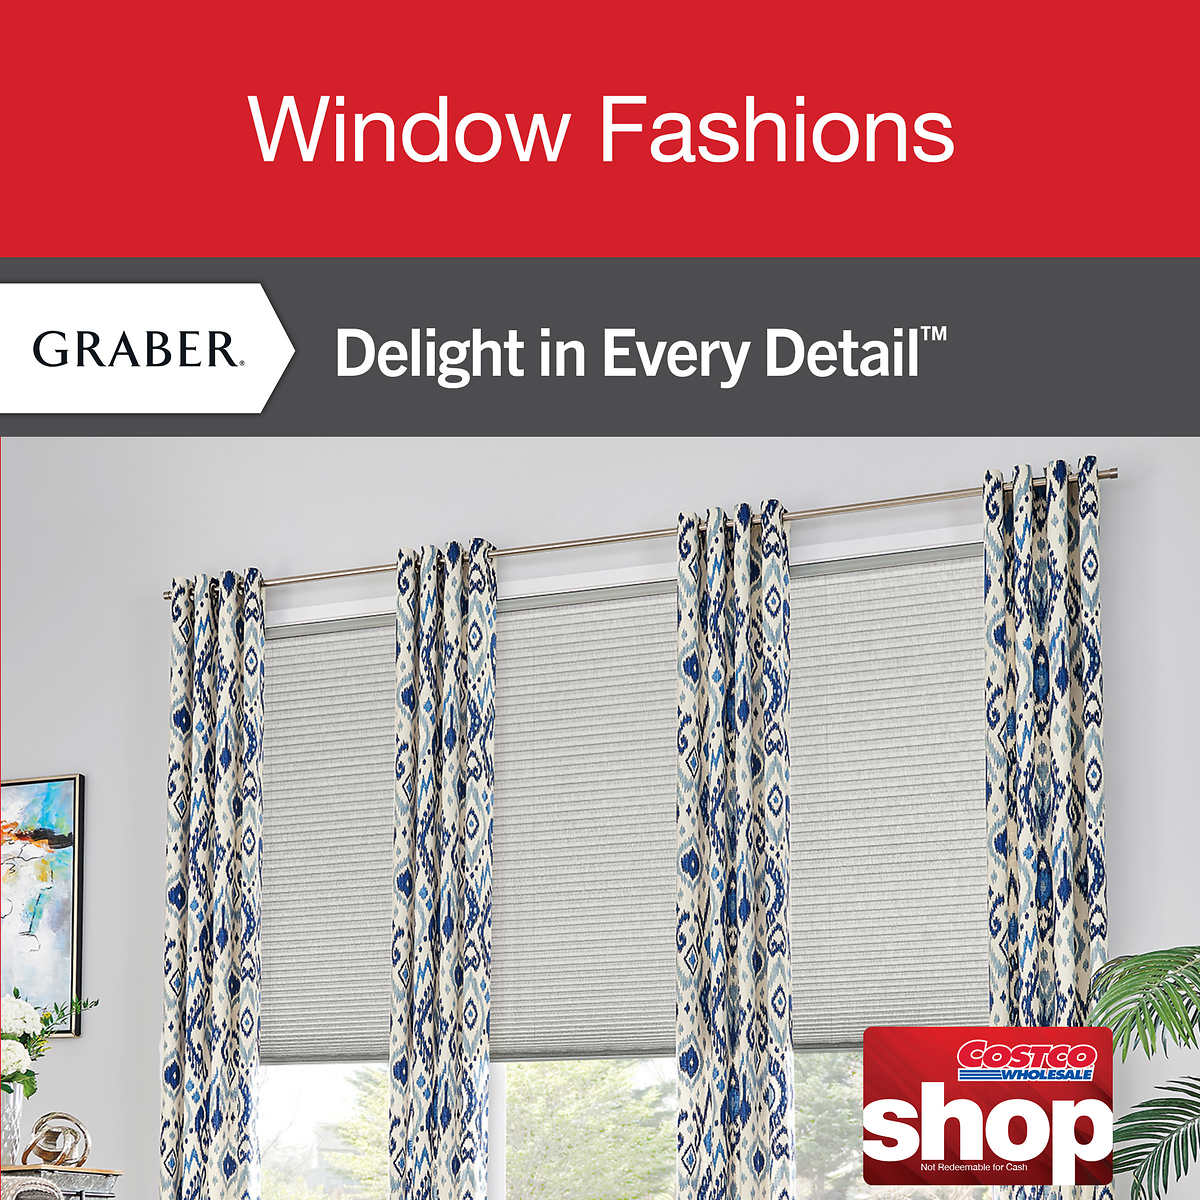 Window blinds for sale window shade price list brands amp review - Graber Custom Window Coverings